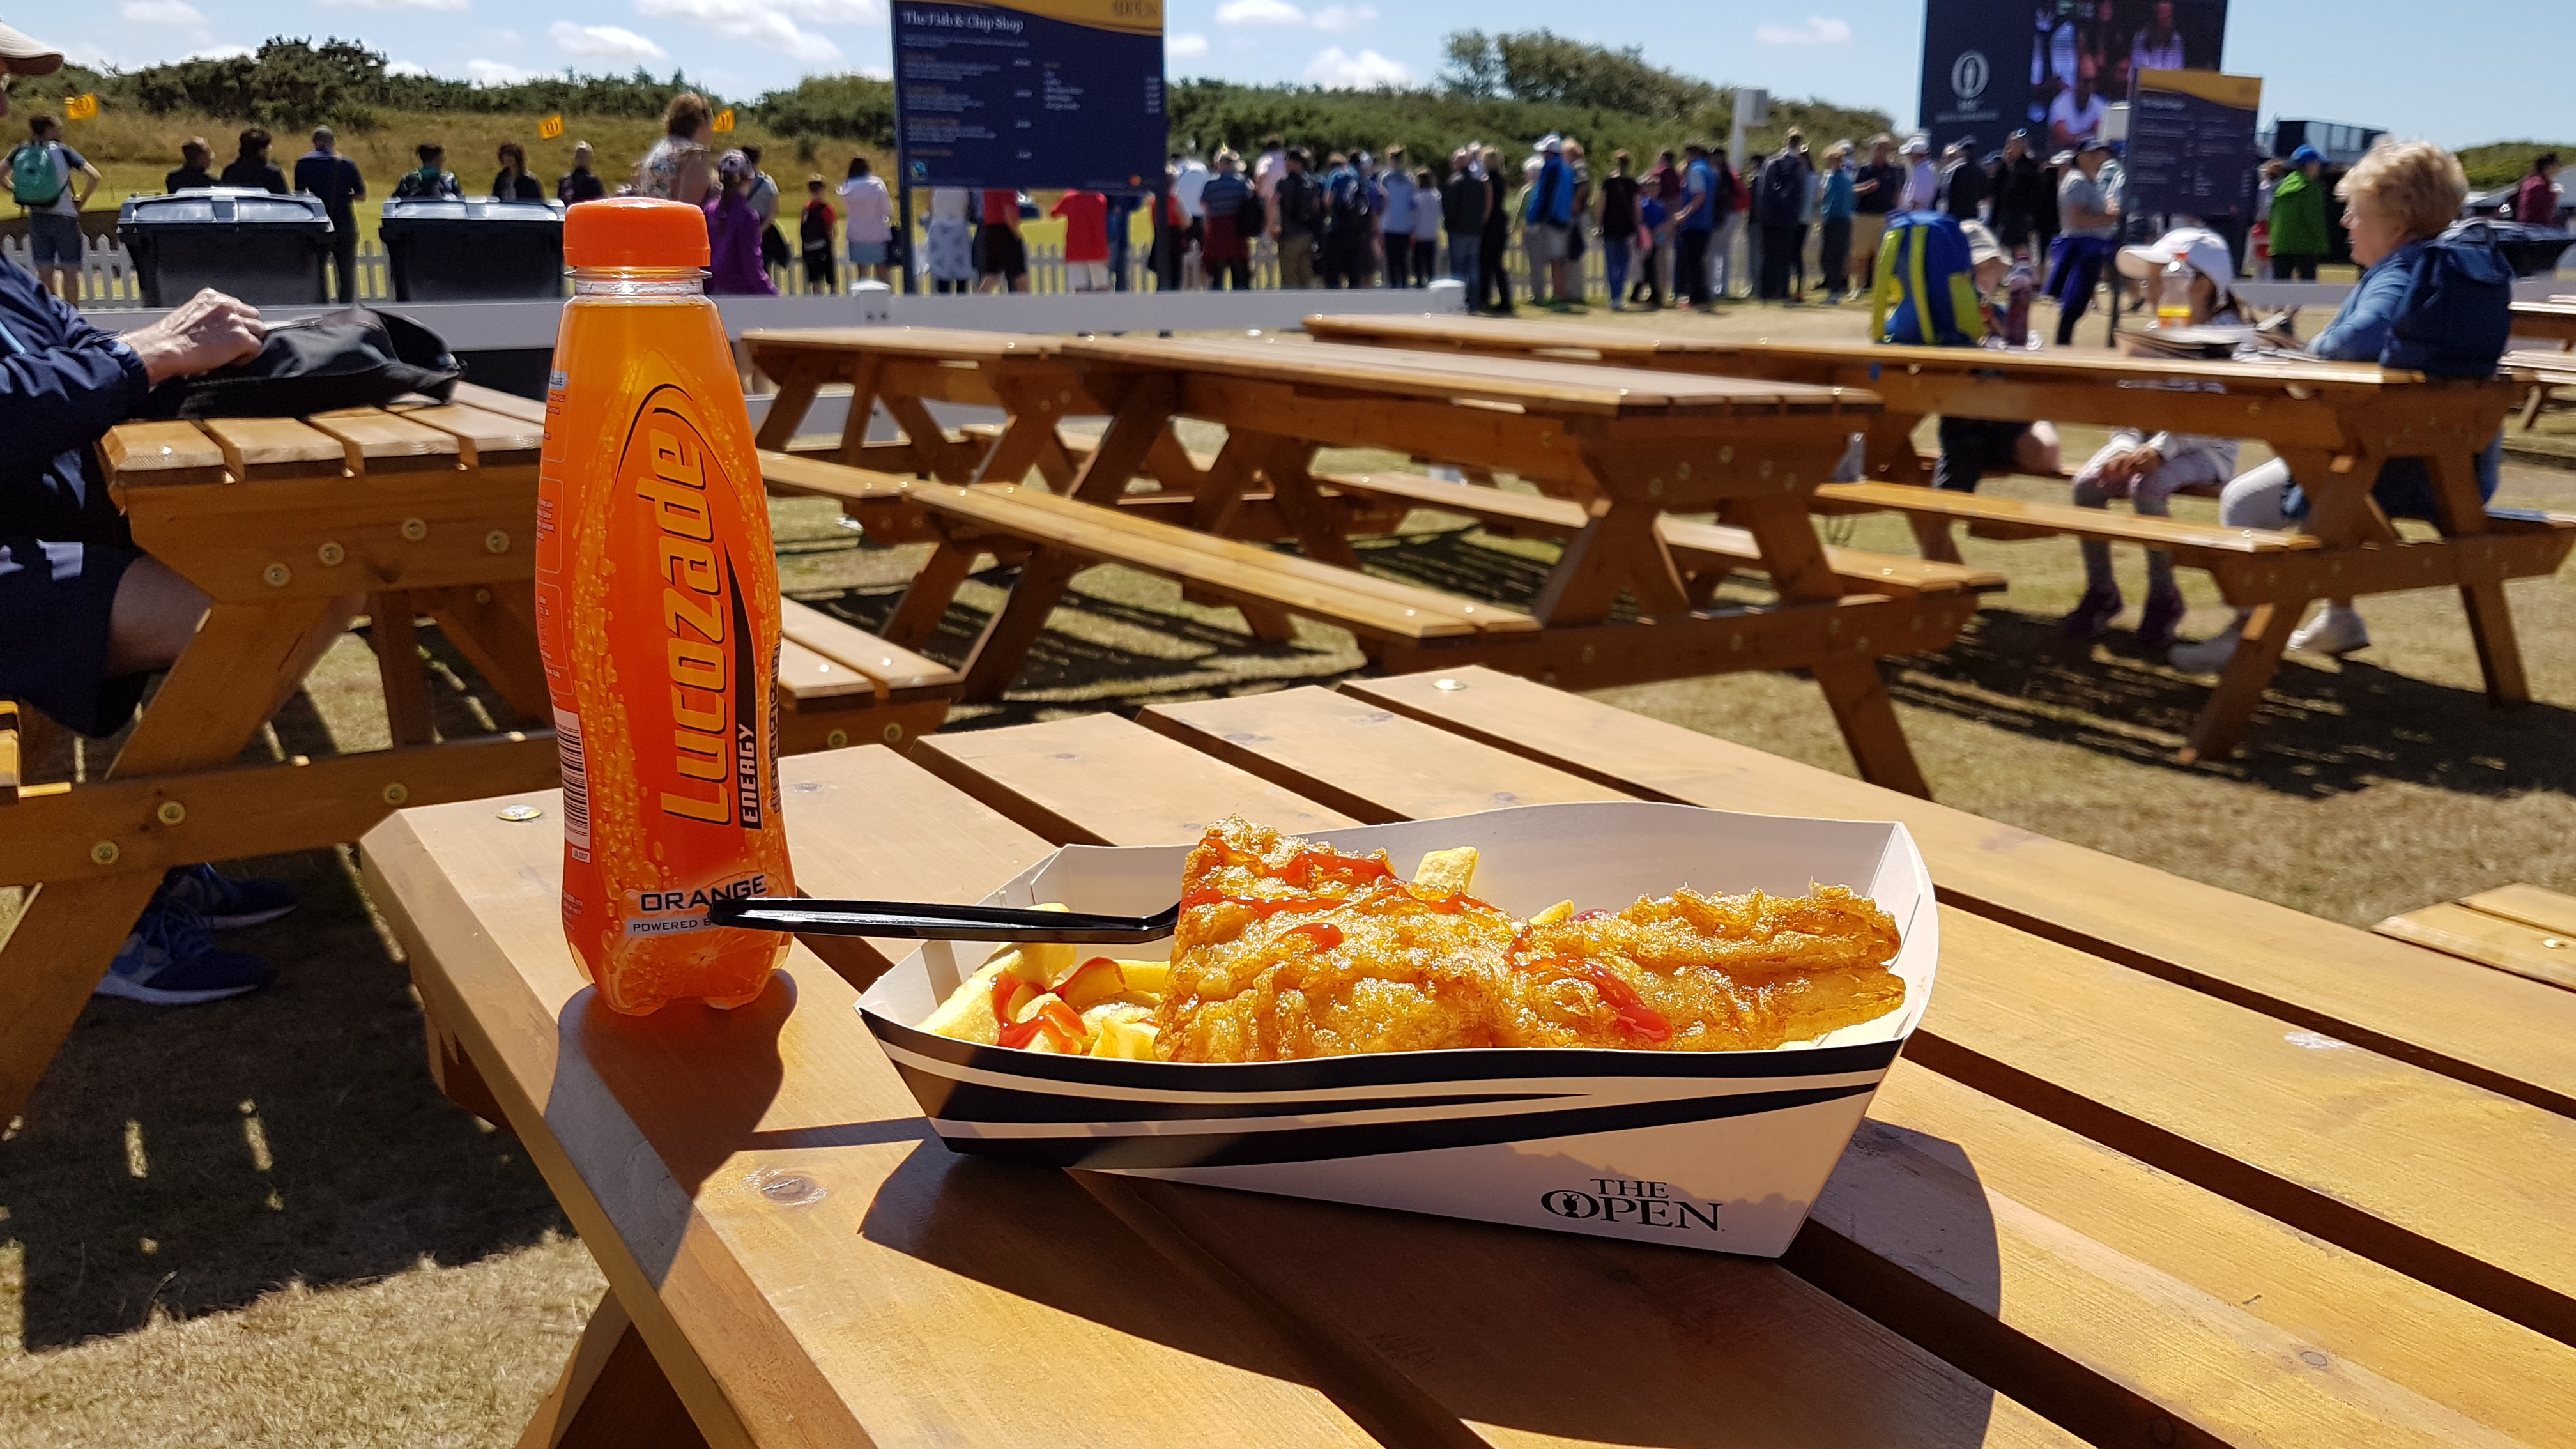 If you are going to The Open make sure you take a picnic with you unless you are prepared to pay vastly inflated prices for your food.    A small portion of fish and chips will set you back an eye watering £10 plus another £2 for a fizzy drink.    Pint of Stella was £5.50.    On the plus side...